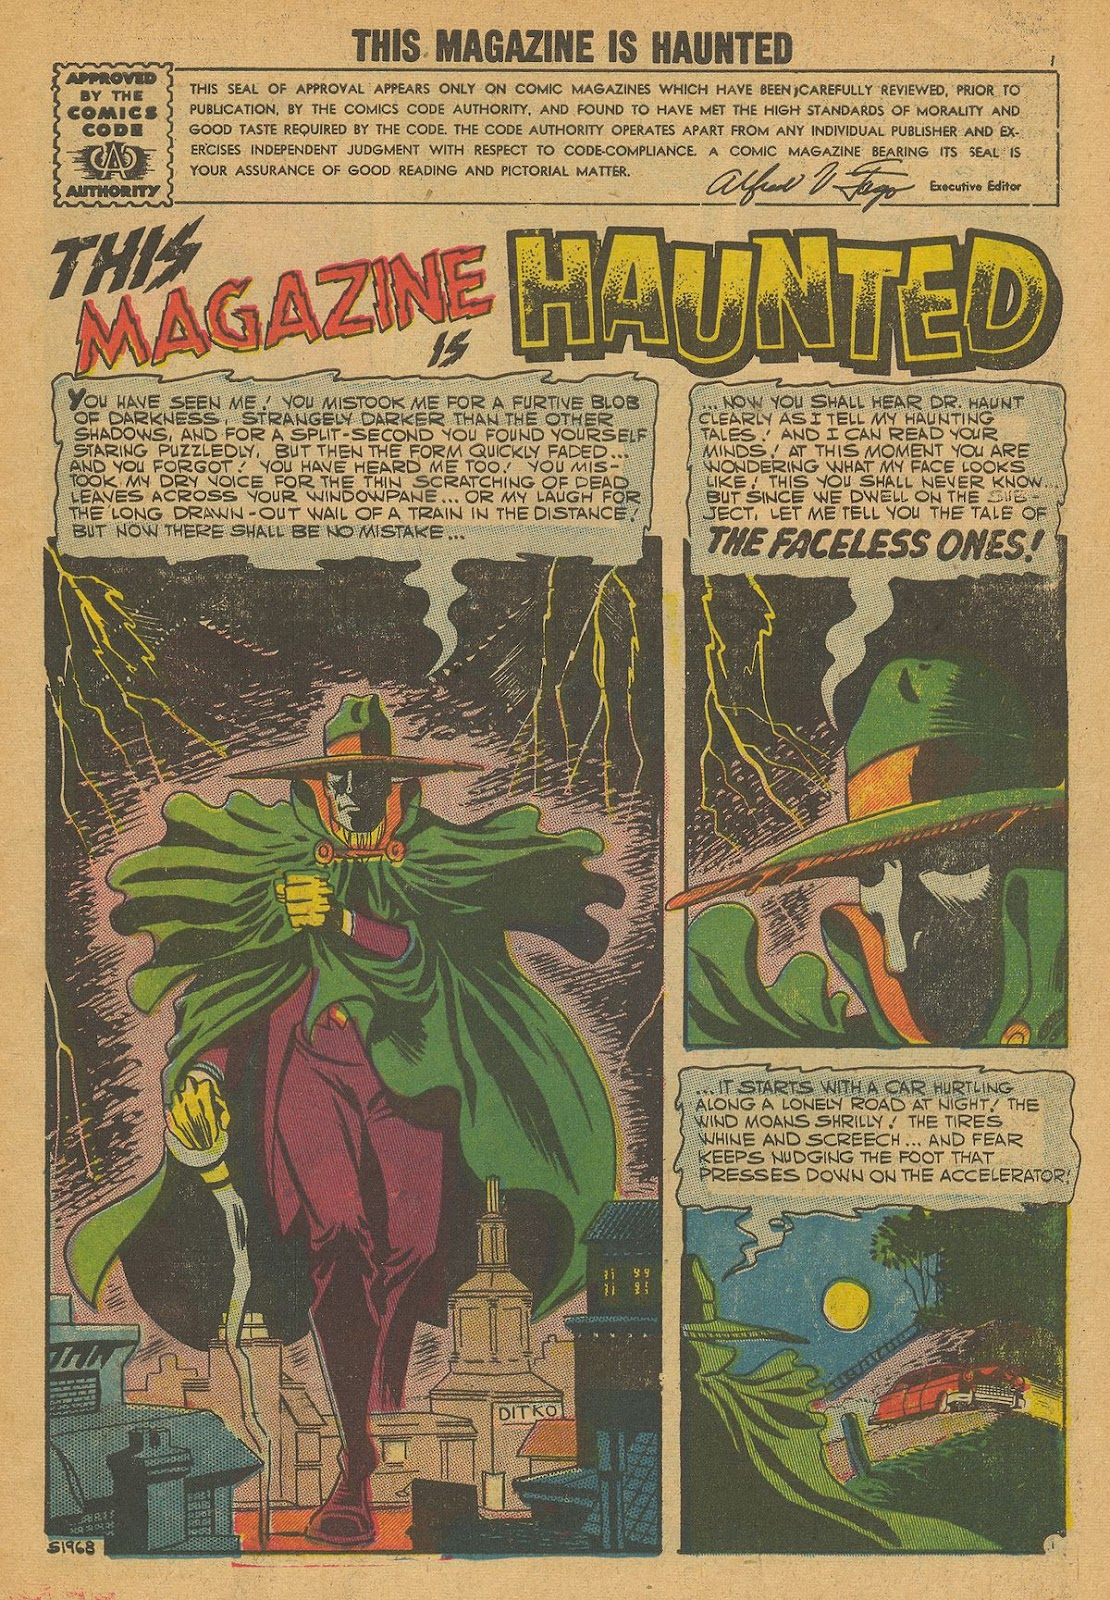 Read online This Magazine Is Haunted comic -  Issue #12 - 3